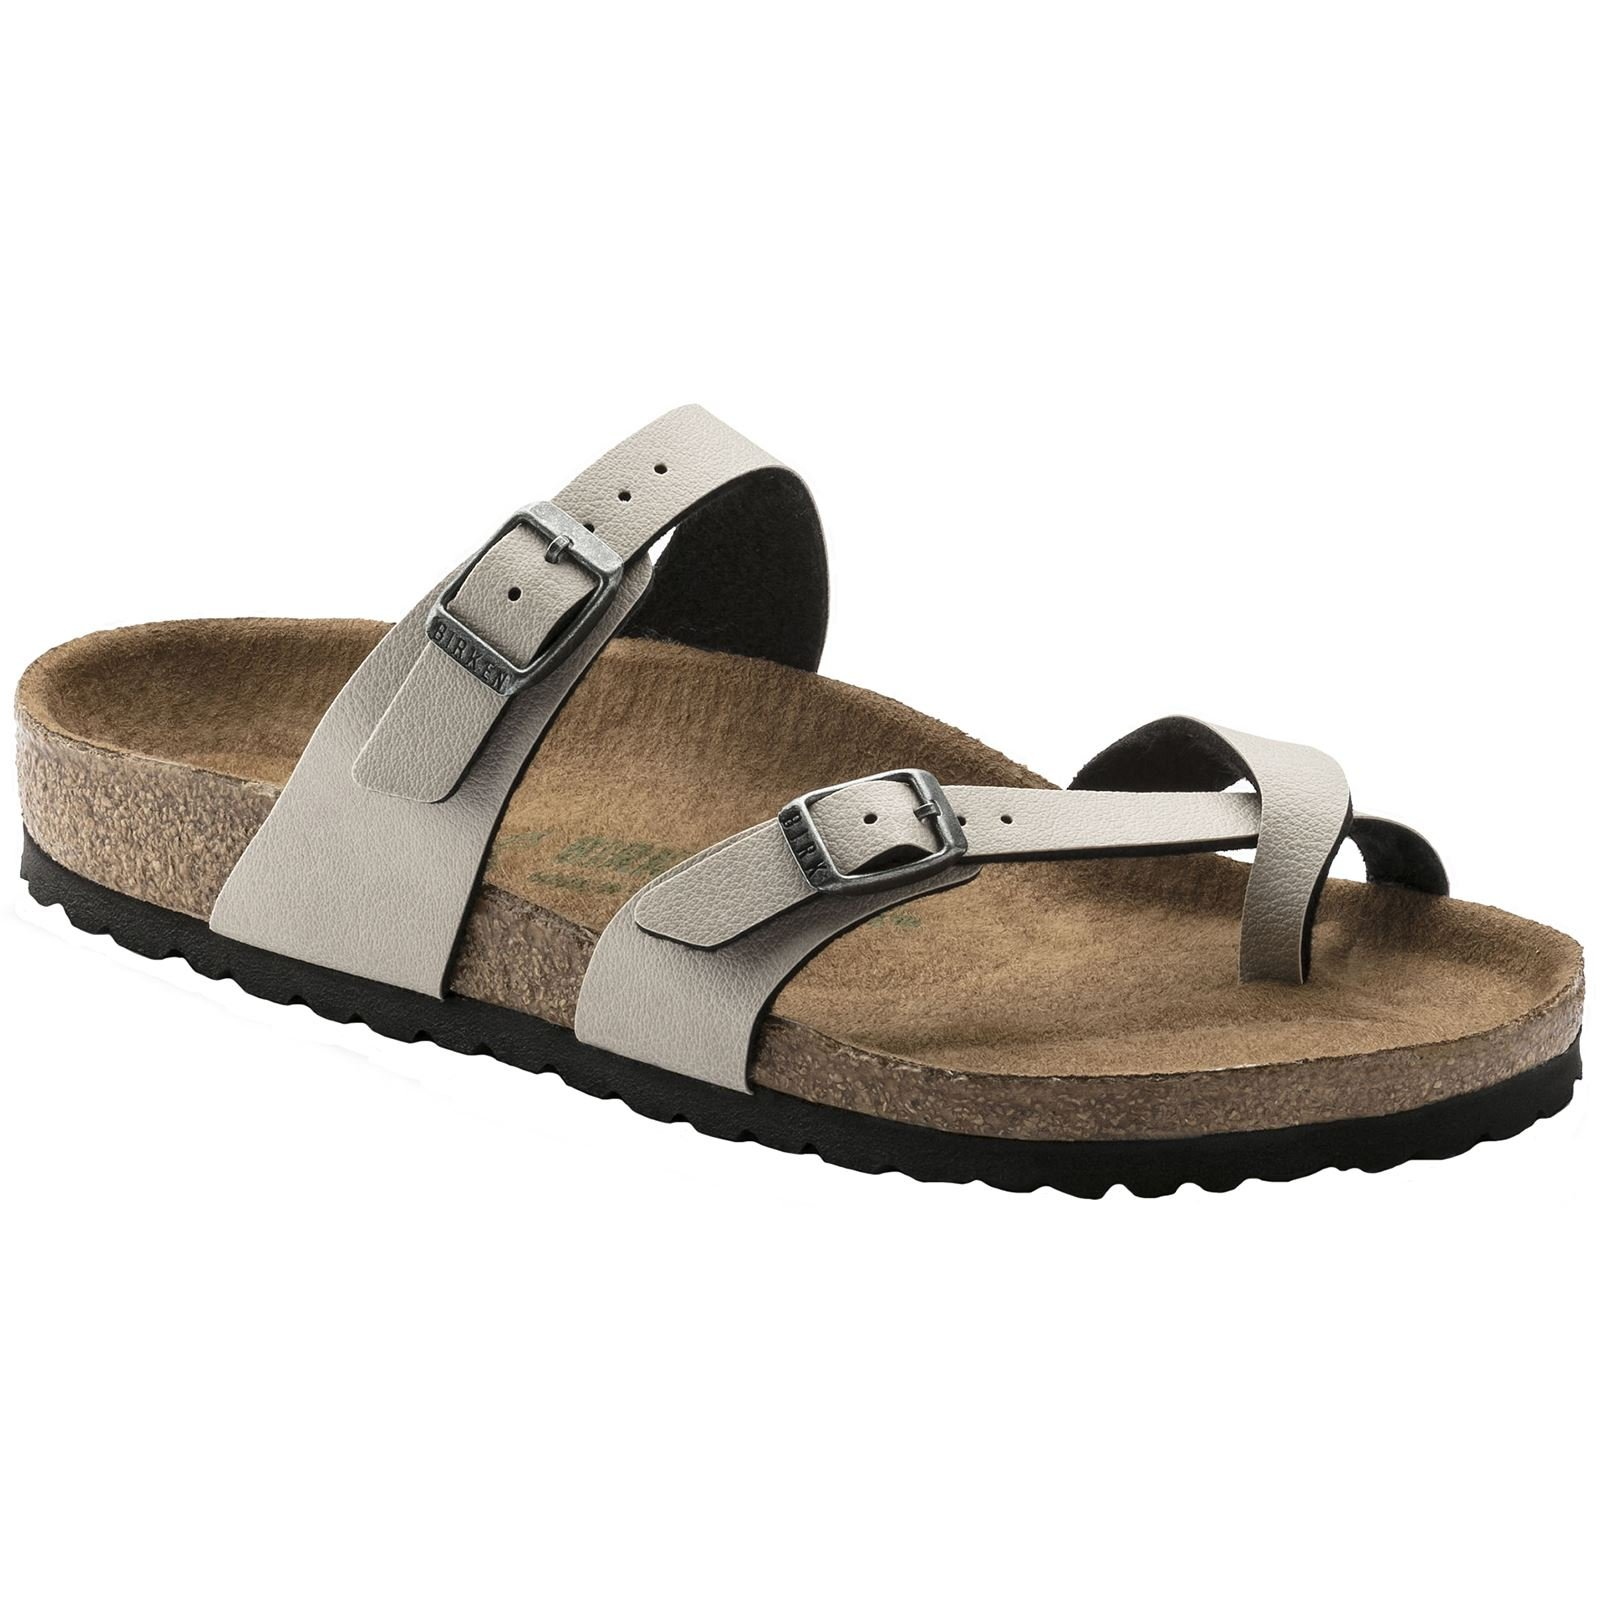 476e2d3e19cc Galleon - Birkenstock New Women s Mayari Vegan Sandal Pull Up Stone 39 R